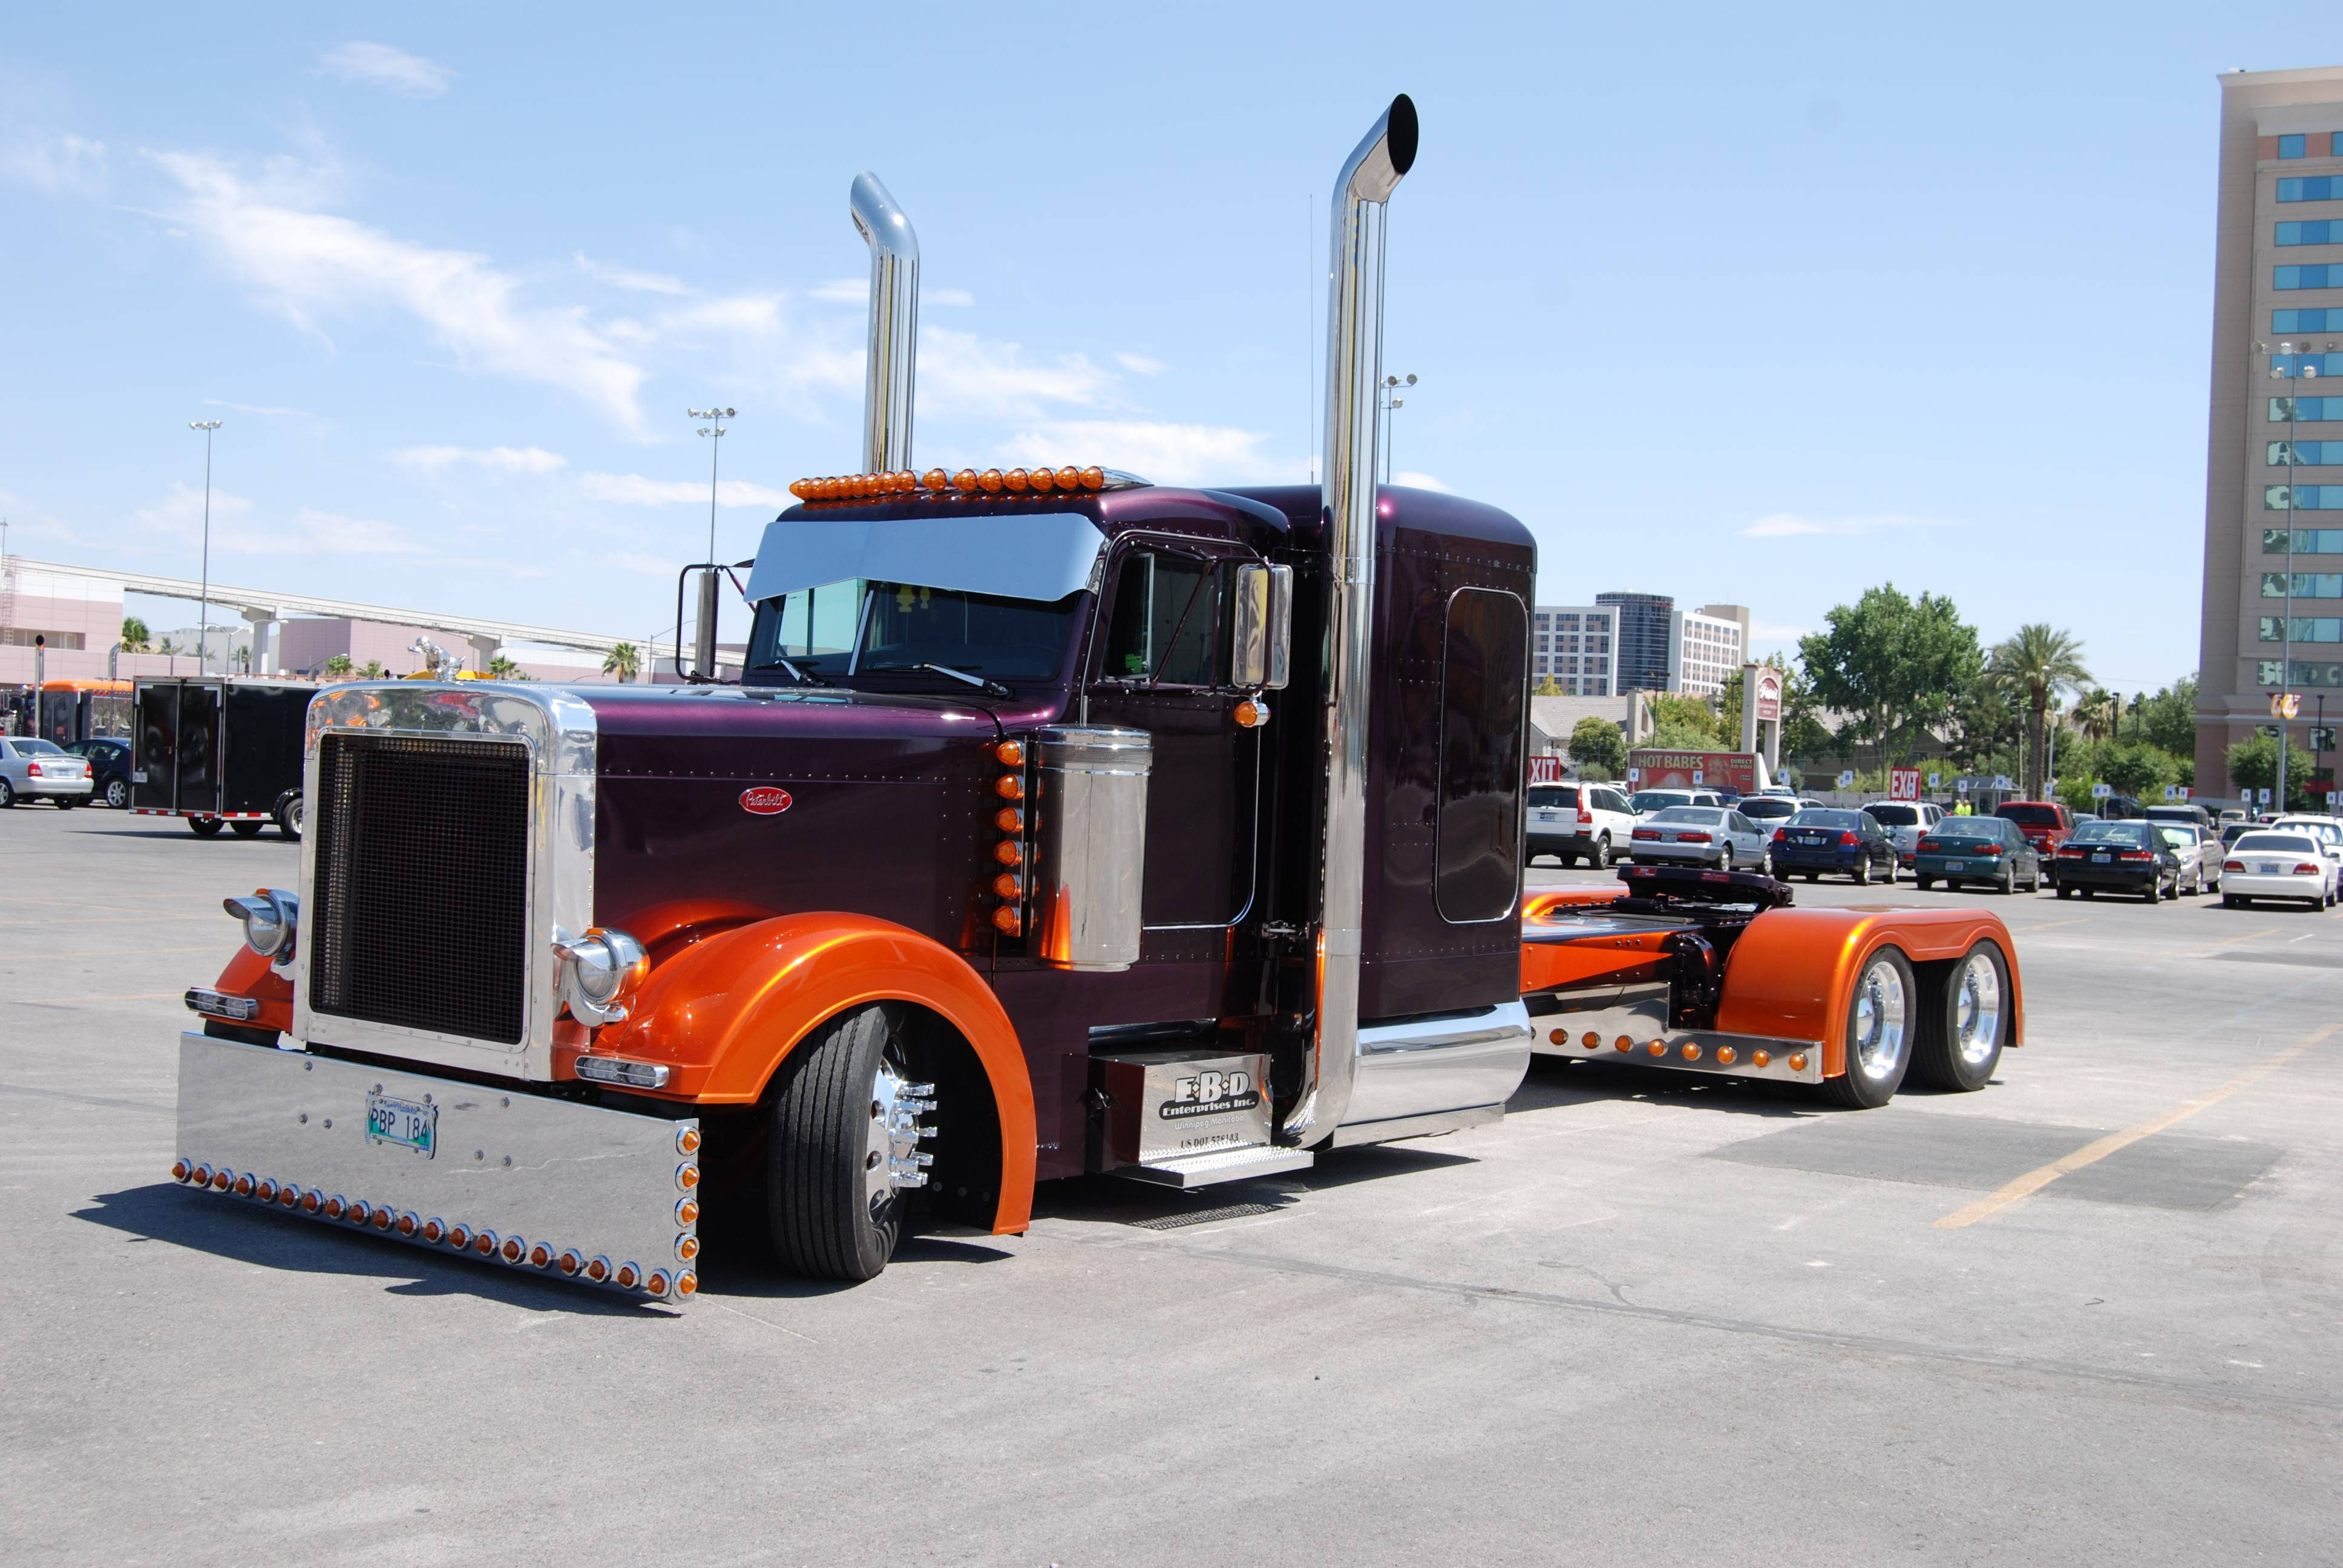 Peterbilt Computer Wallpapers, Desktop Backgrounds 3872x2592 Id ...